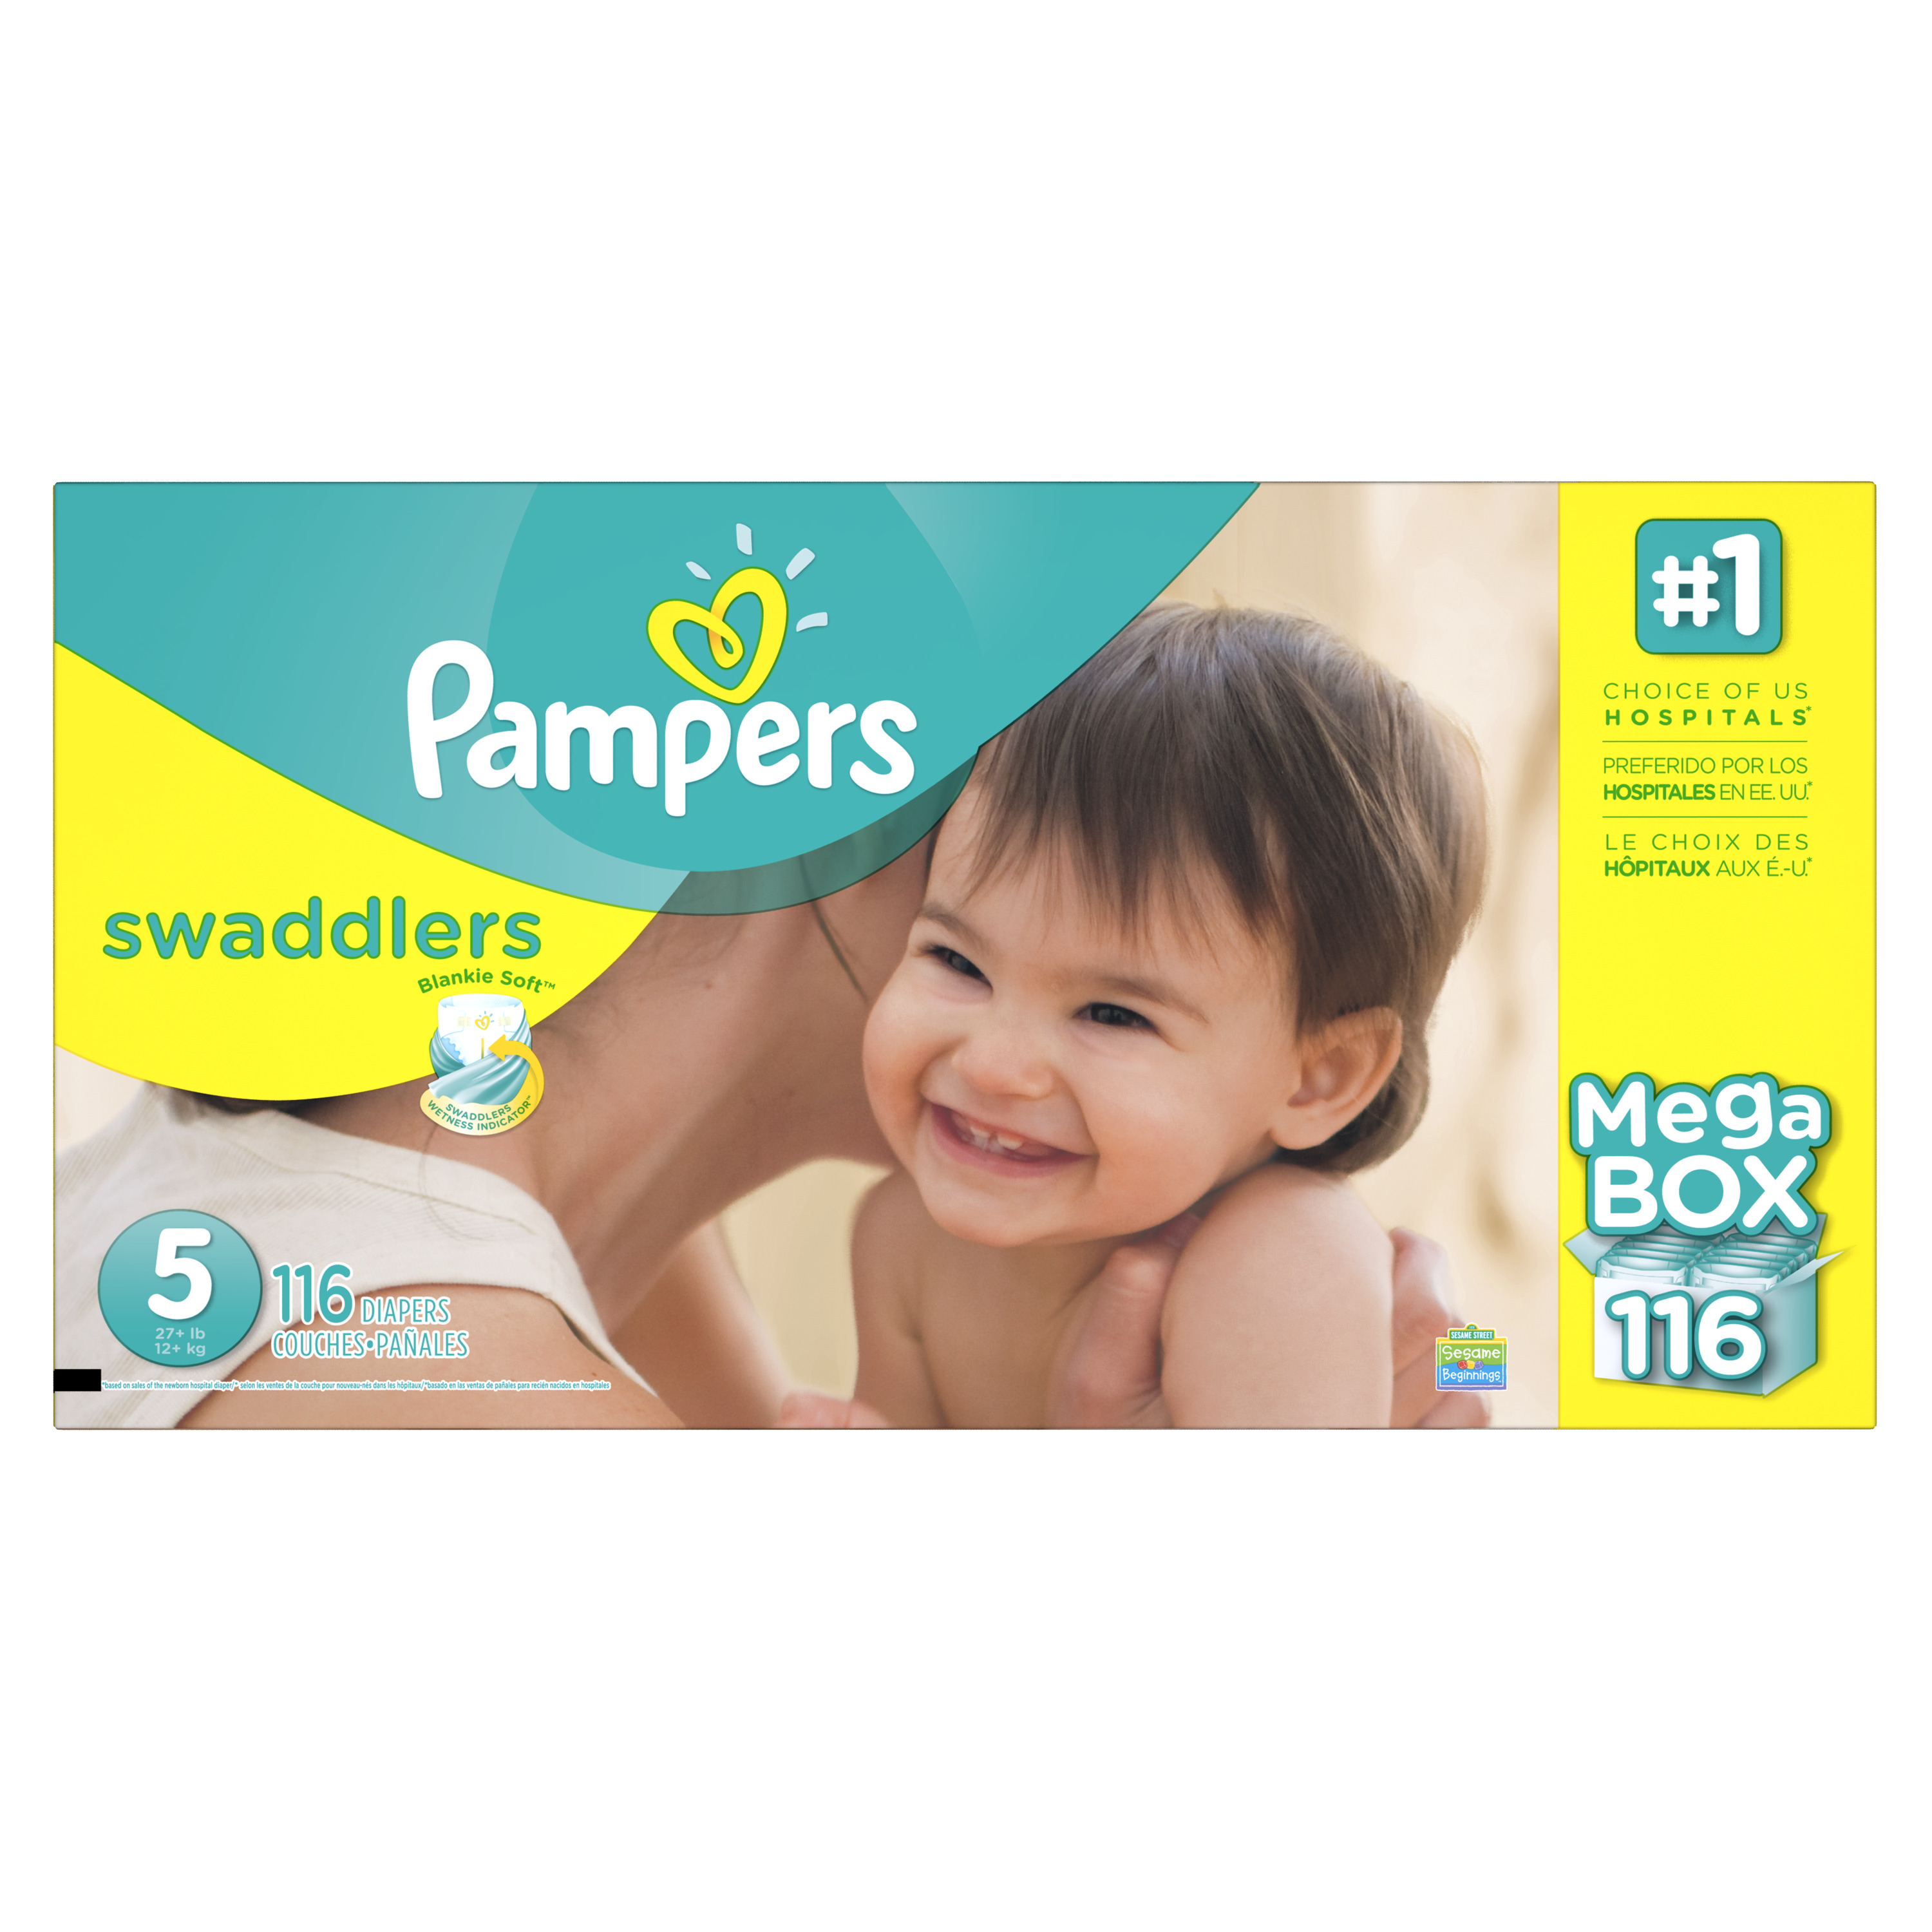 Product of 'Pampers' Swaddlers Size 5 Diapers; 116 ct. Bulk Qty, Free Shipping Comfortable, Soft, No Leaking &... by Branded Diapers